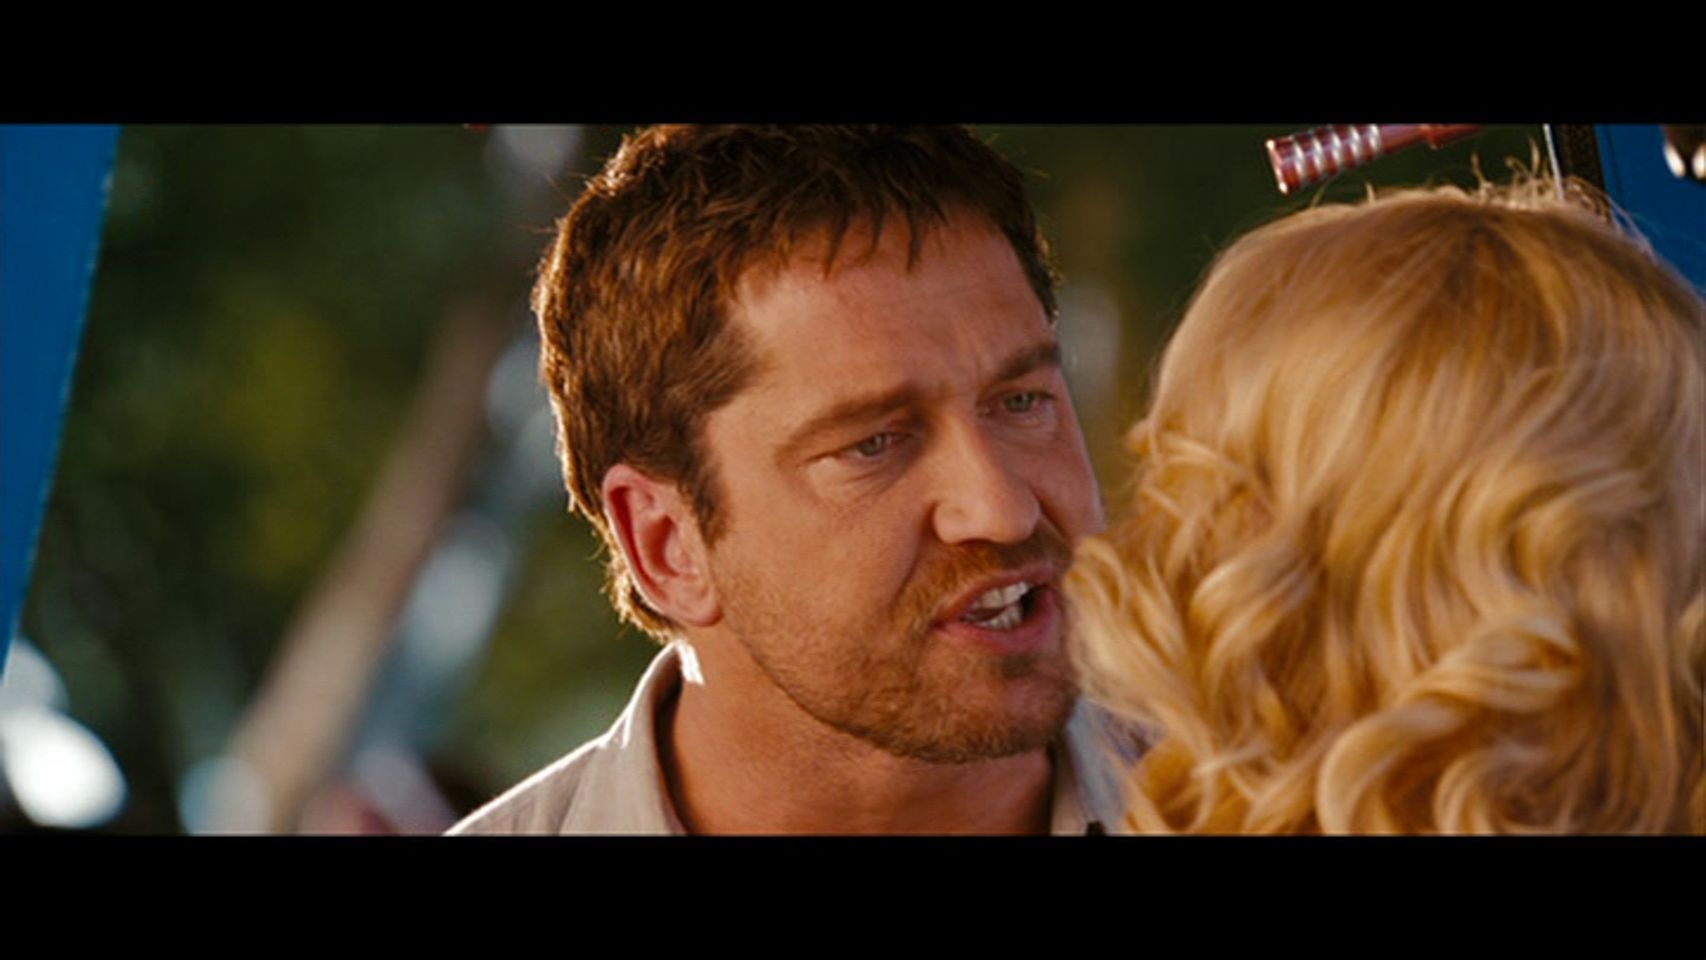 the ugly tryth Watch the ugly truth streaming - starring katherine heigl, gerard butler, bree turner, eric winter - directed by robert luketic.